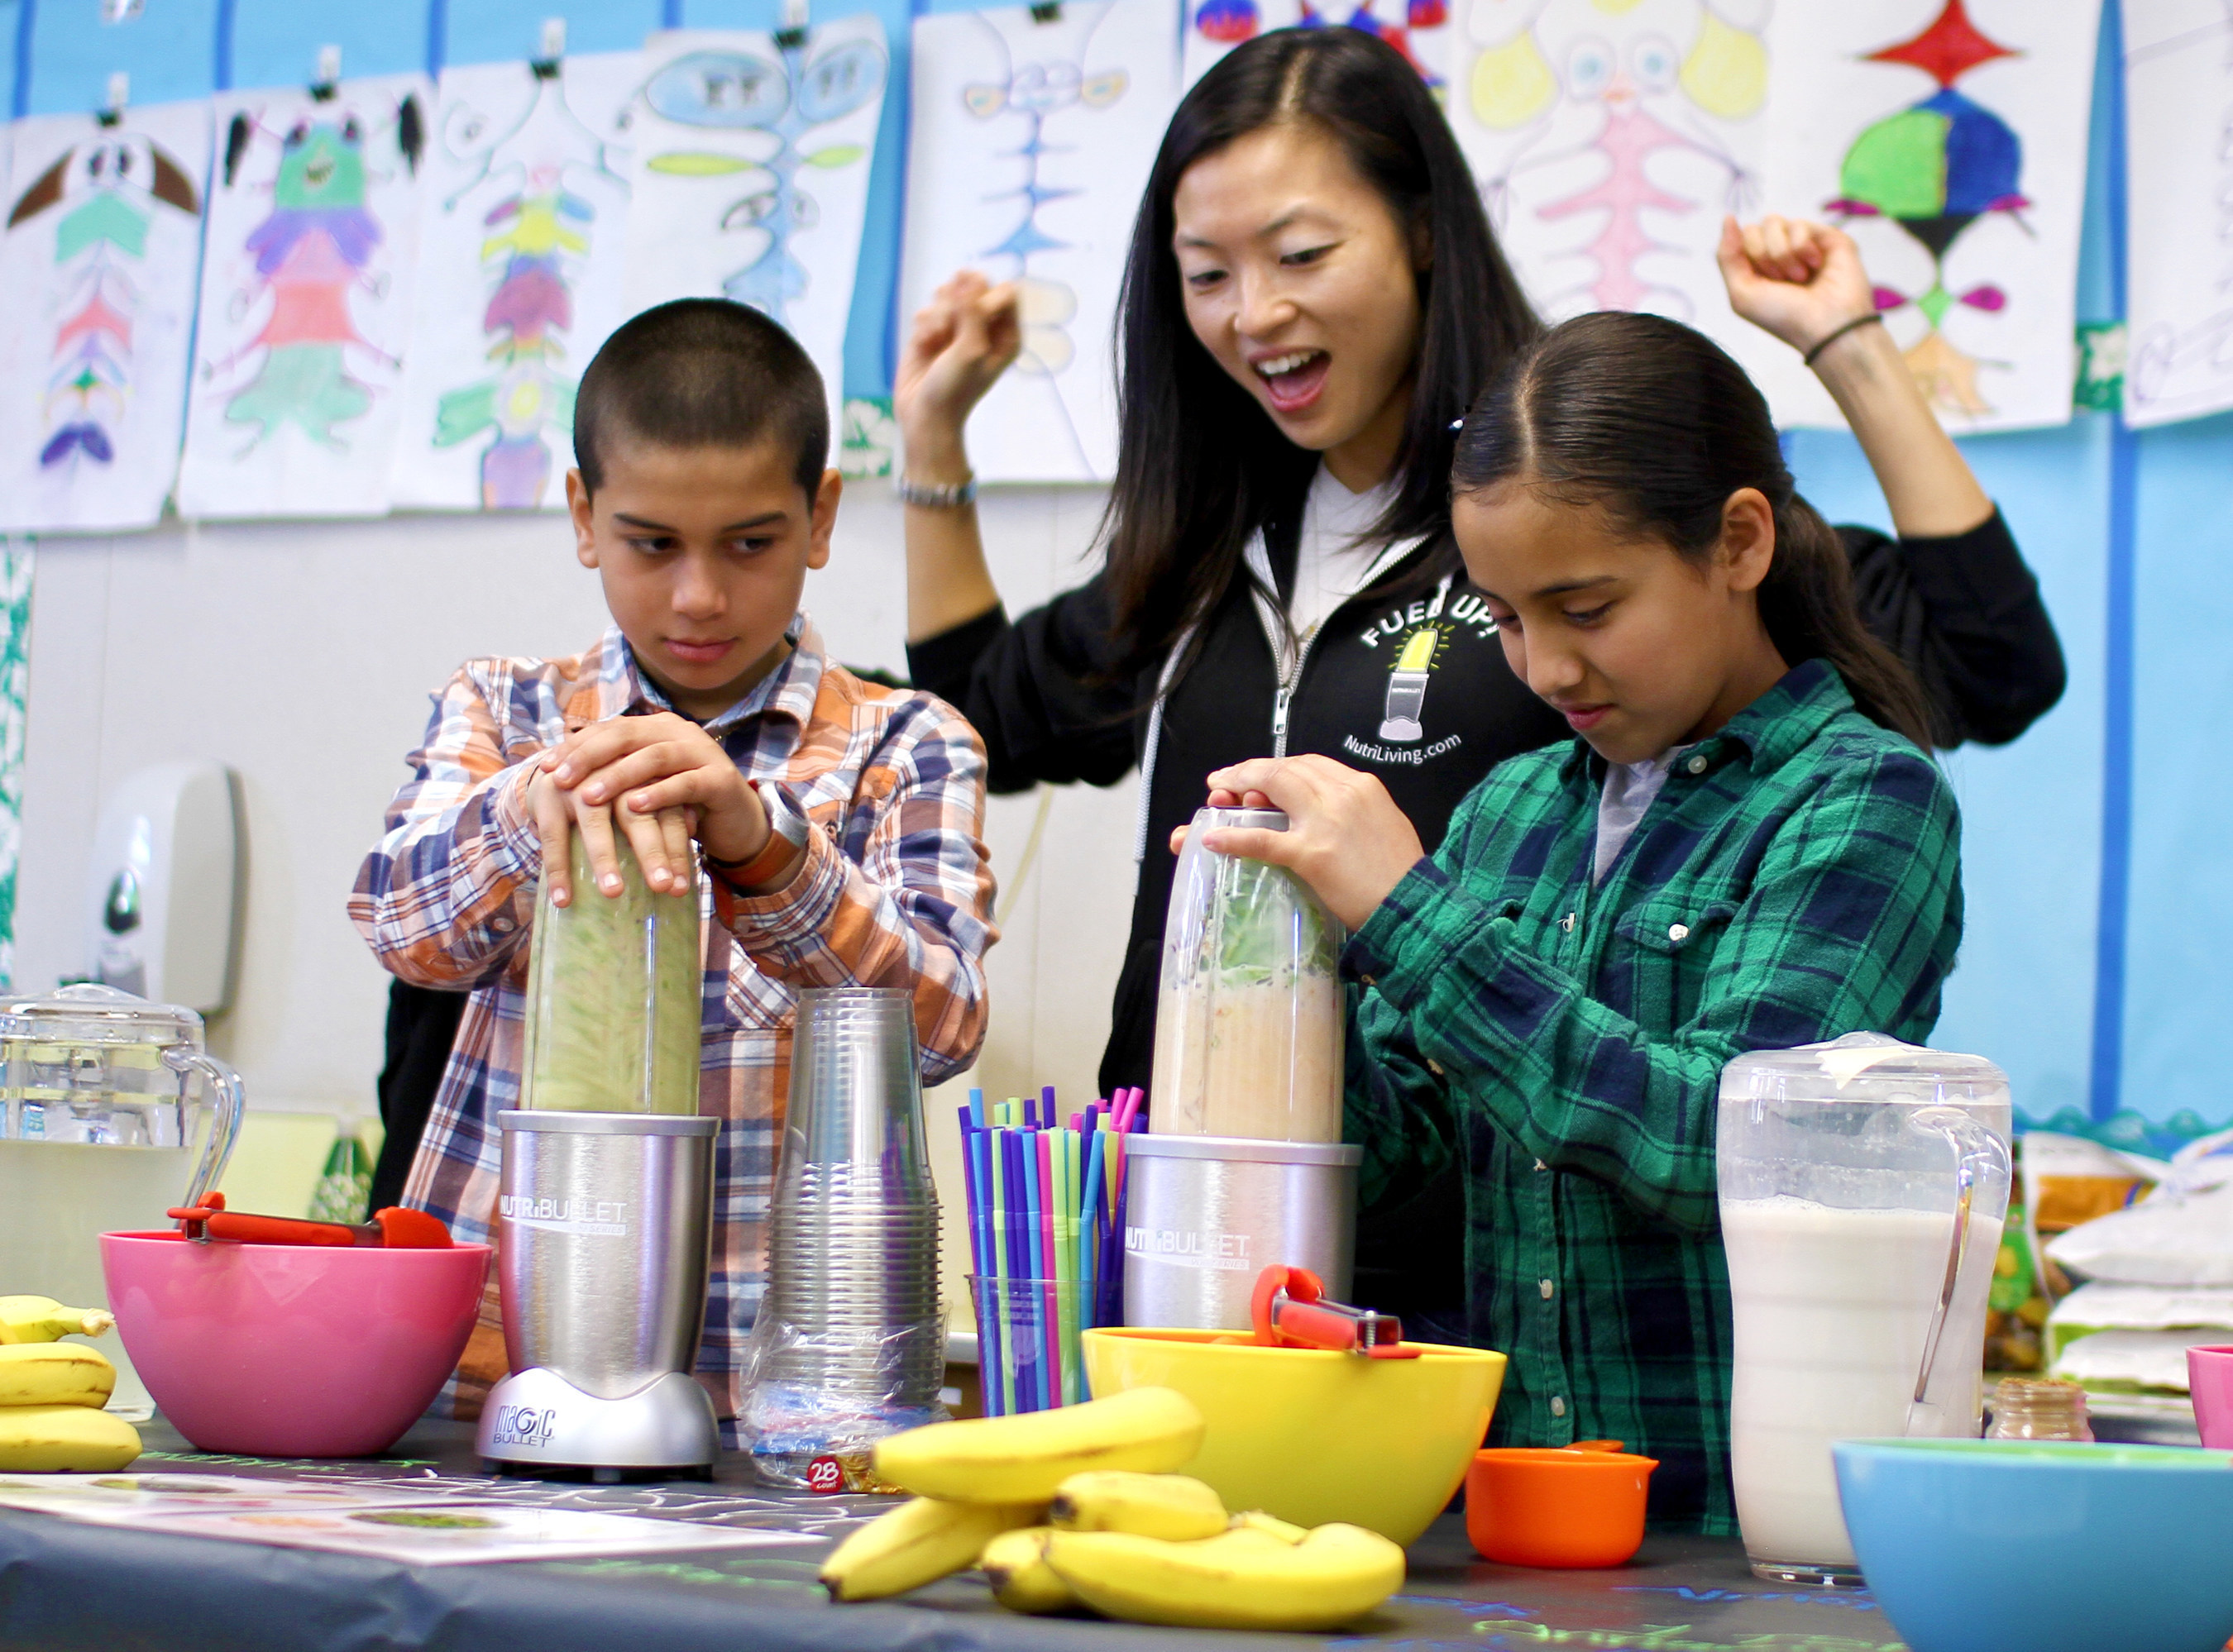 NutriBullet dietitian Gigi Kwok works with students at El Verano Elementary in Sonoma, Calif. as part of the ...